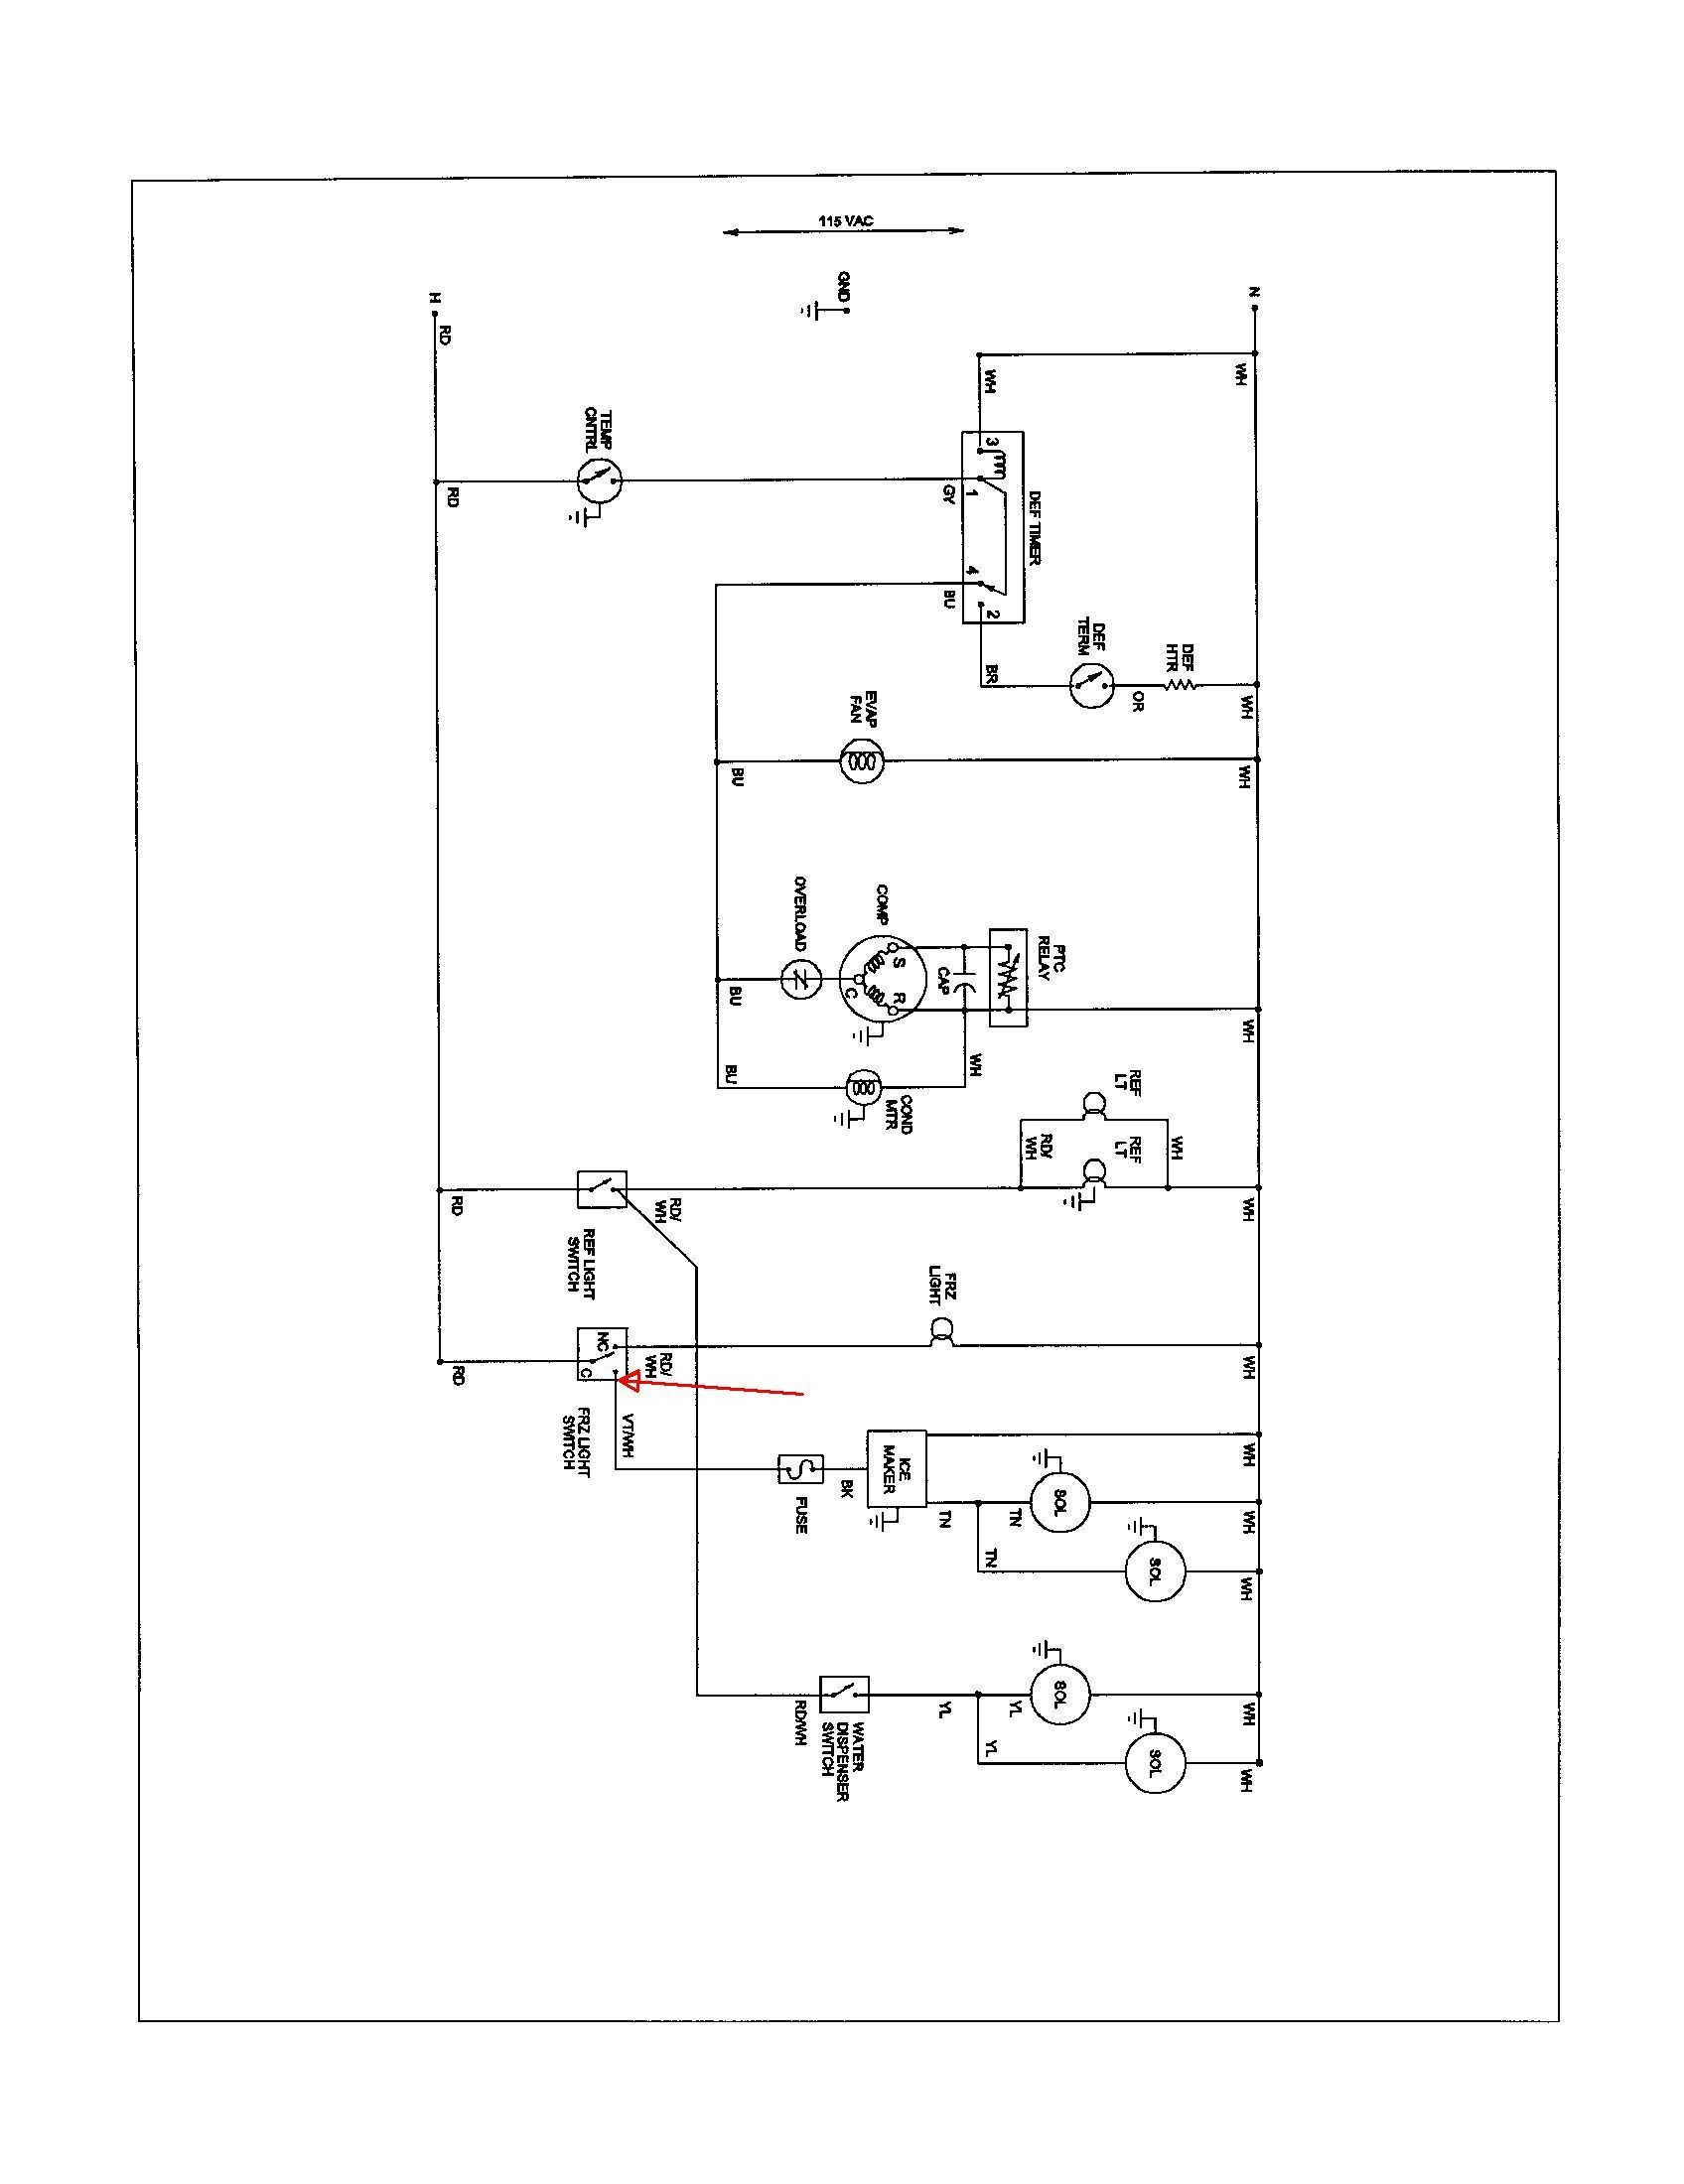 Walk In Cooler Wiring Diagram from mainetreasurechest.com